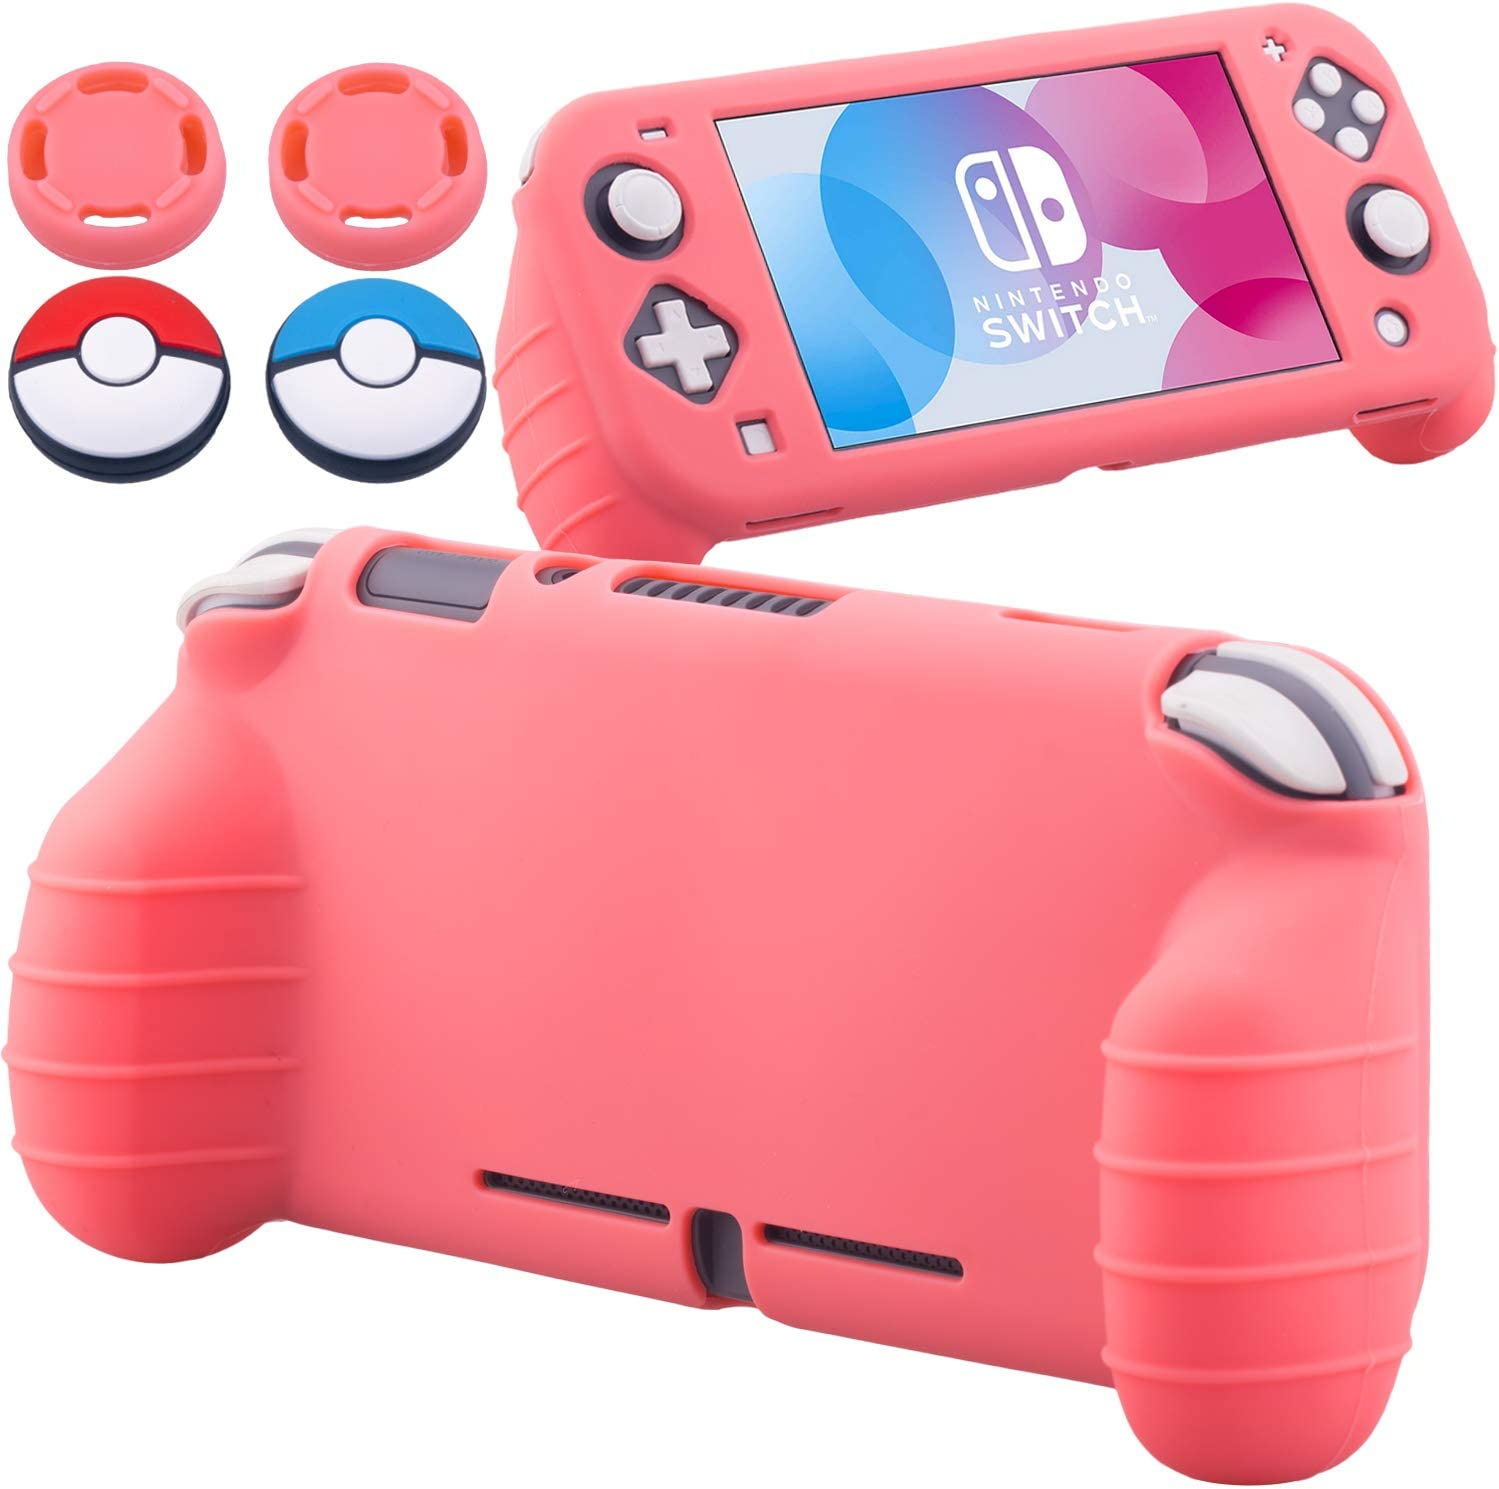 YoRHa Handle Grip Soft Silicone Rubber Protective Cover Case (Coral) x 1 and Thumbsticks x 4 for Nintendo Switch Lite - 9.2019 Slim Model